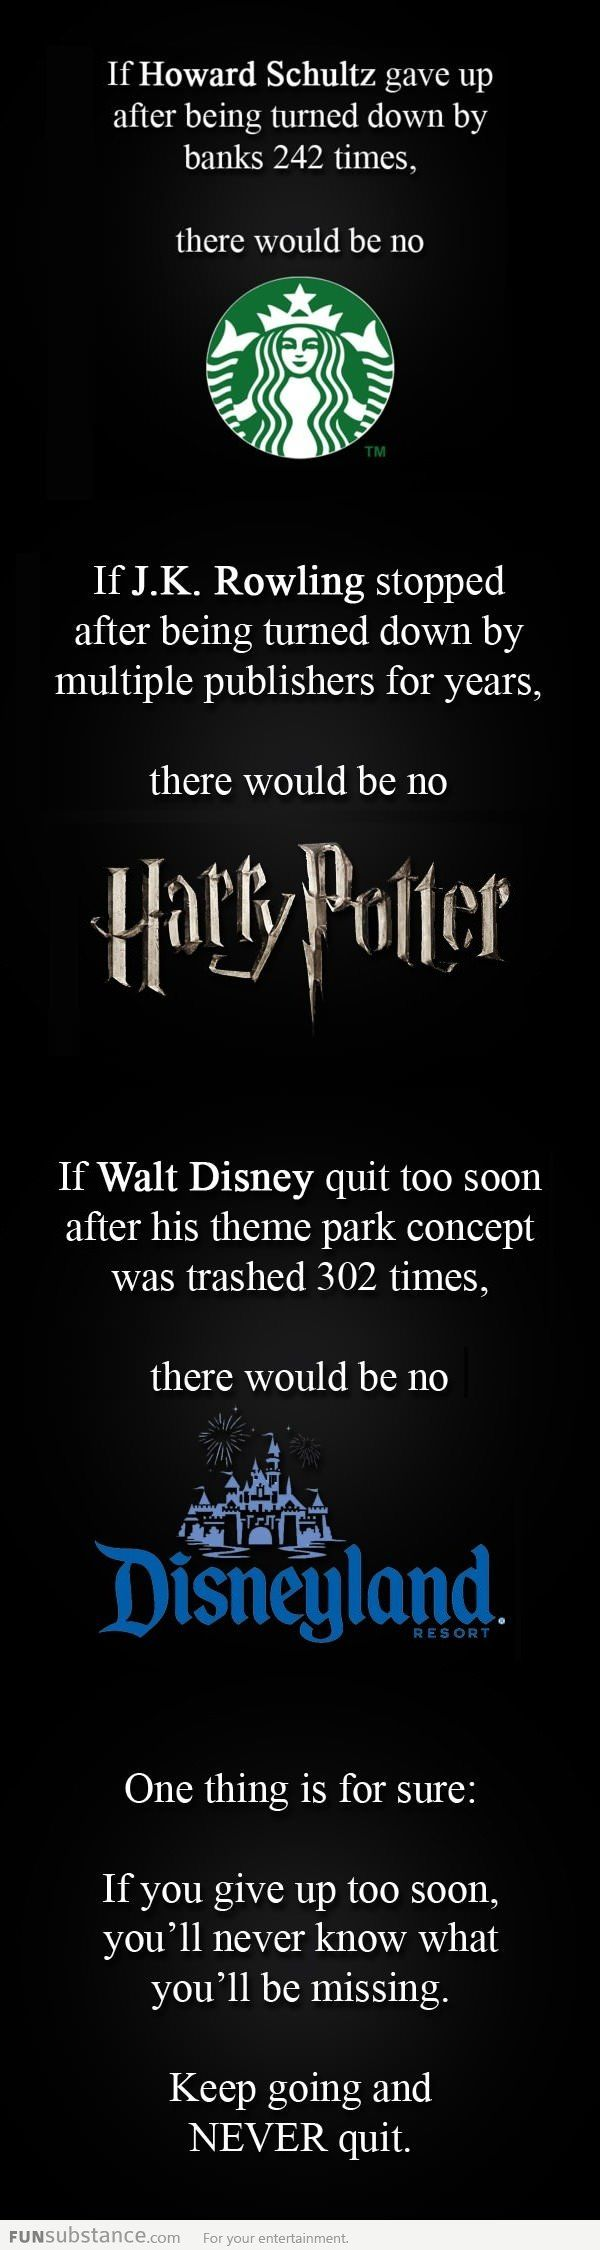 """This is why I hate the quote: """"the definition of insanity is doing the same thing over and over again, expecting different results""""    I therefore celebrate the insane, and thank them for my Latte, Hogwarts, and Space Mountain...and I wish to join their exclusive club someday, sooner than later...!"""